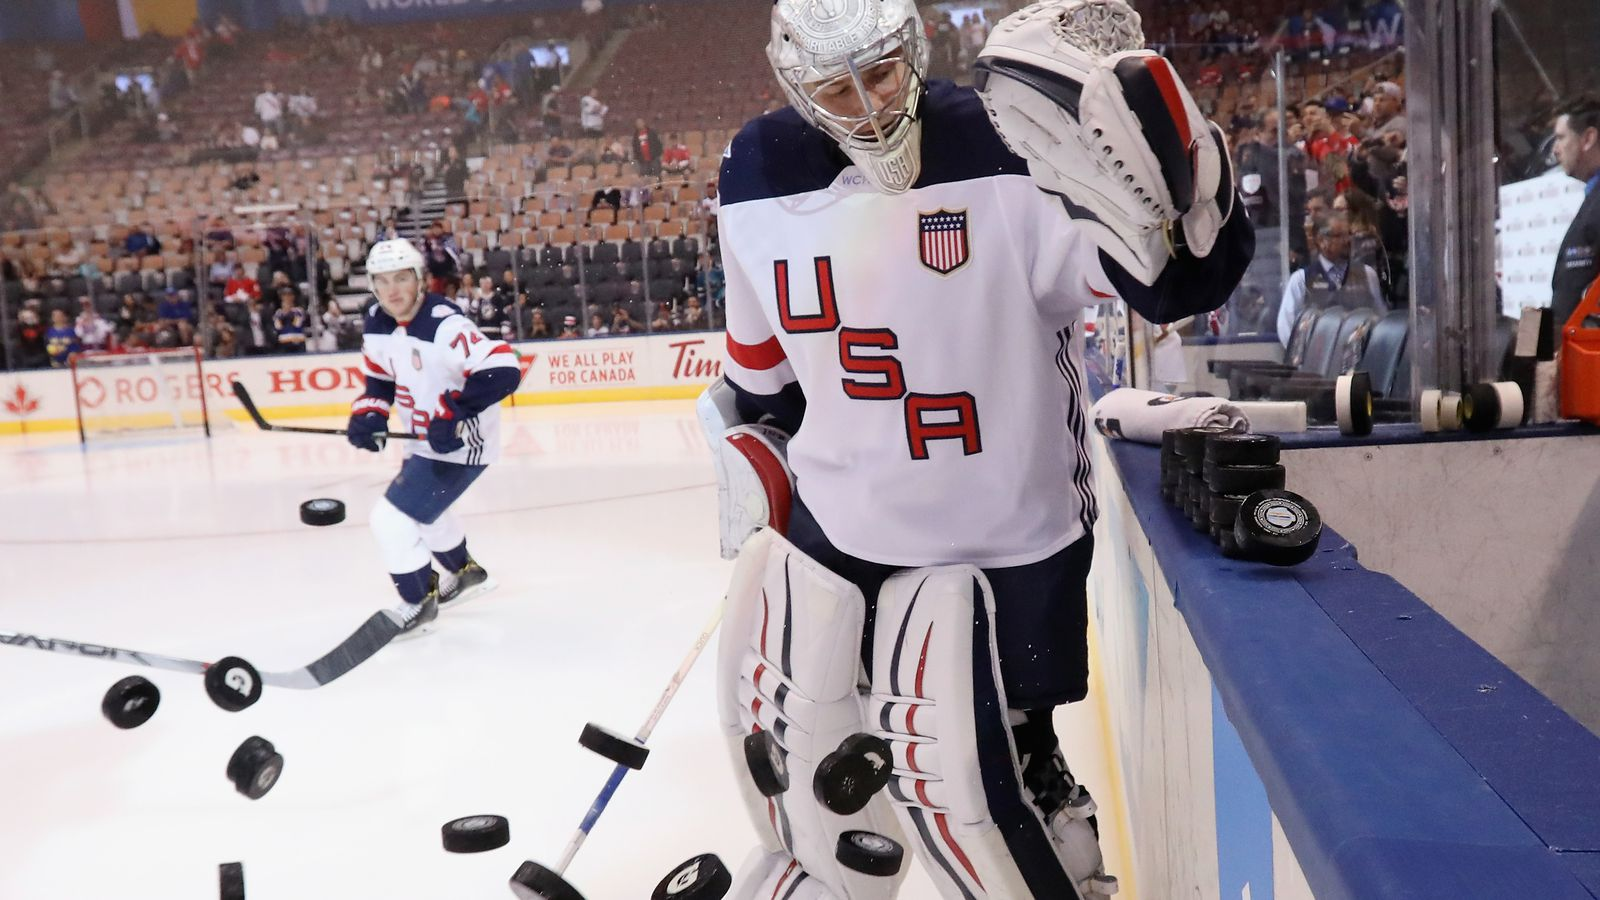 US men's hockey team will stand with women in World Championship boycott, per report